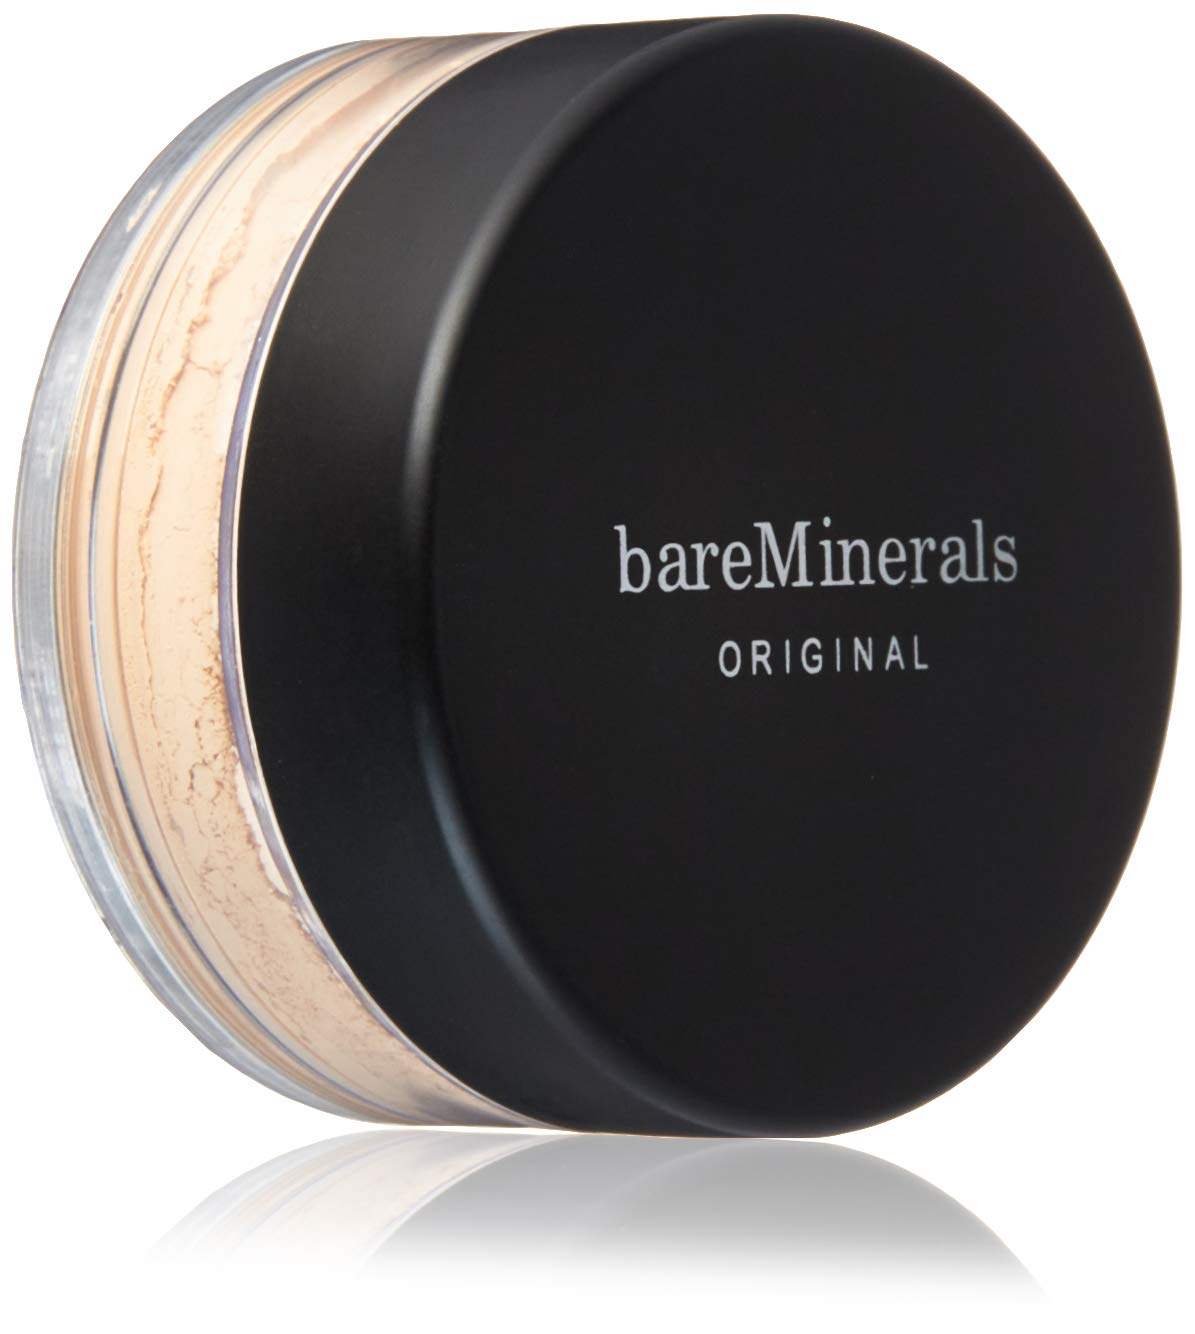 Bareminerals Original Foundation SPF 15 Fairly Light 03 8 G / 0.28 Oz